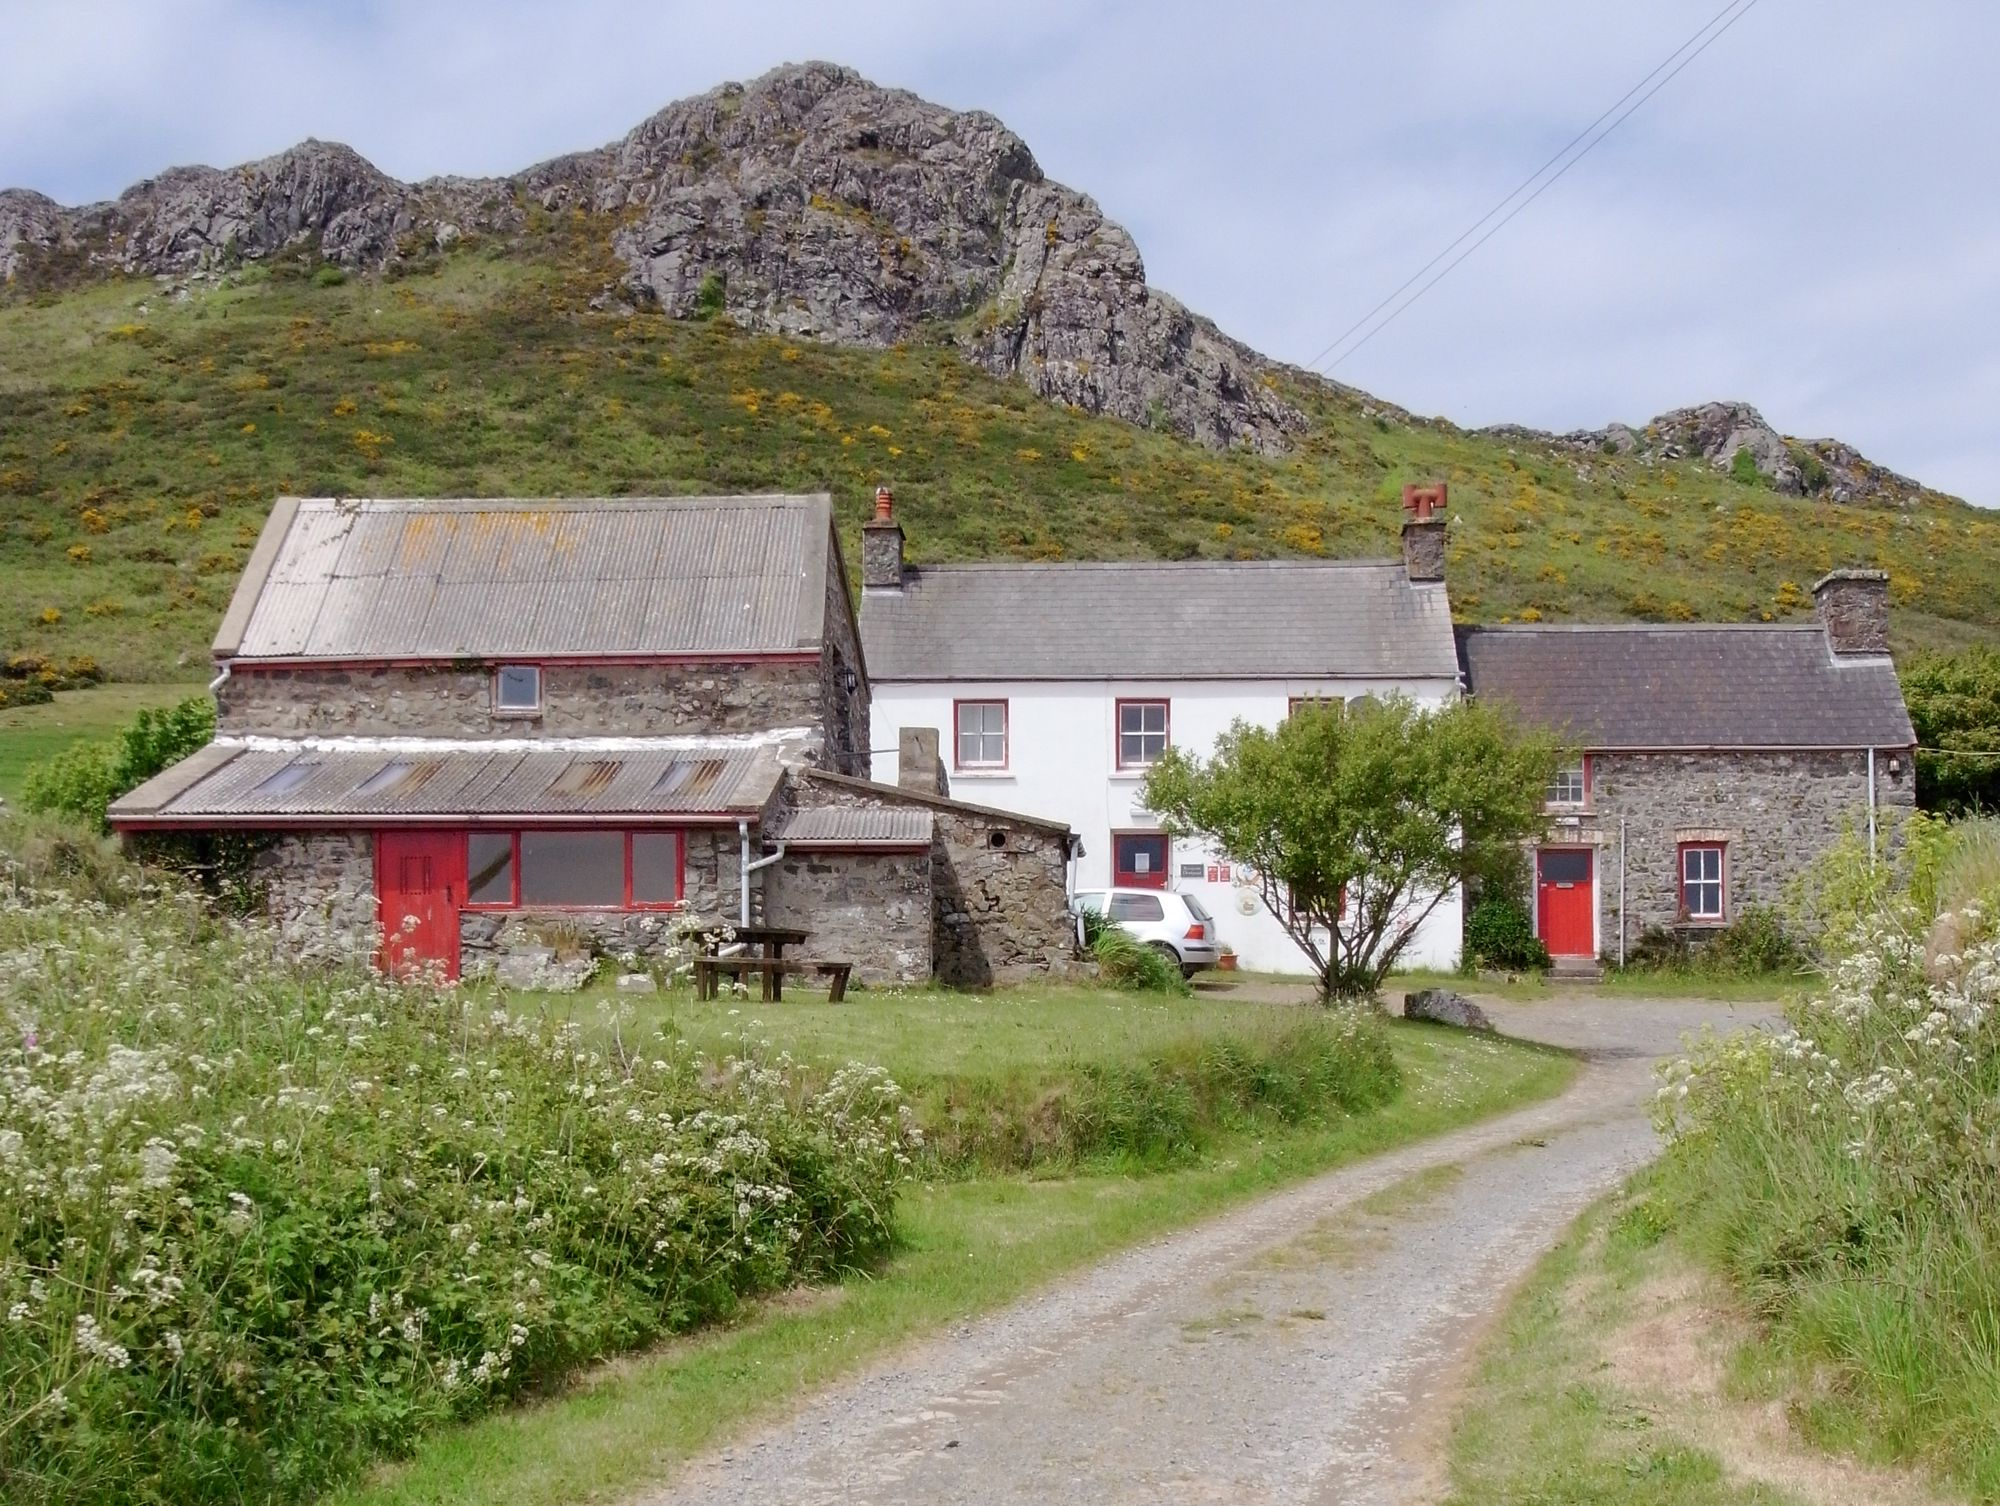 Hostels in South Wales holidays at Cool Places